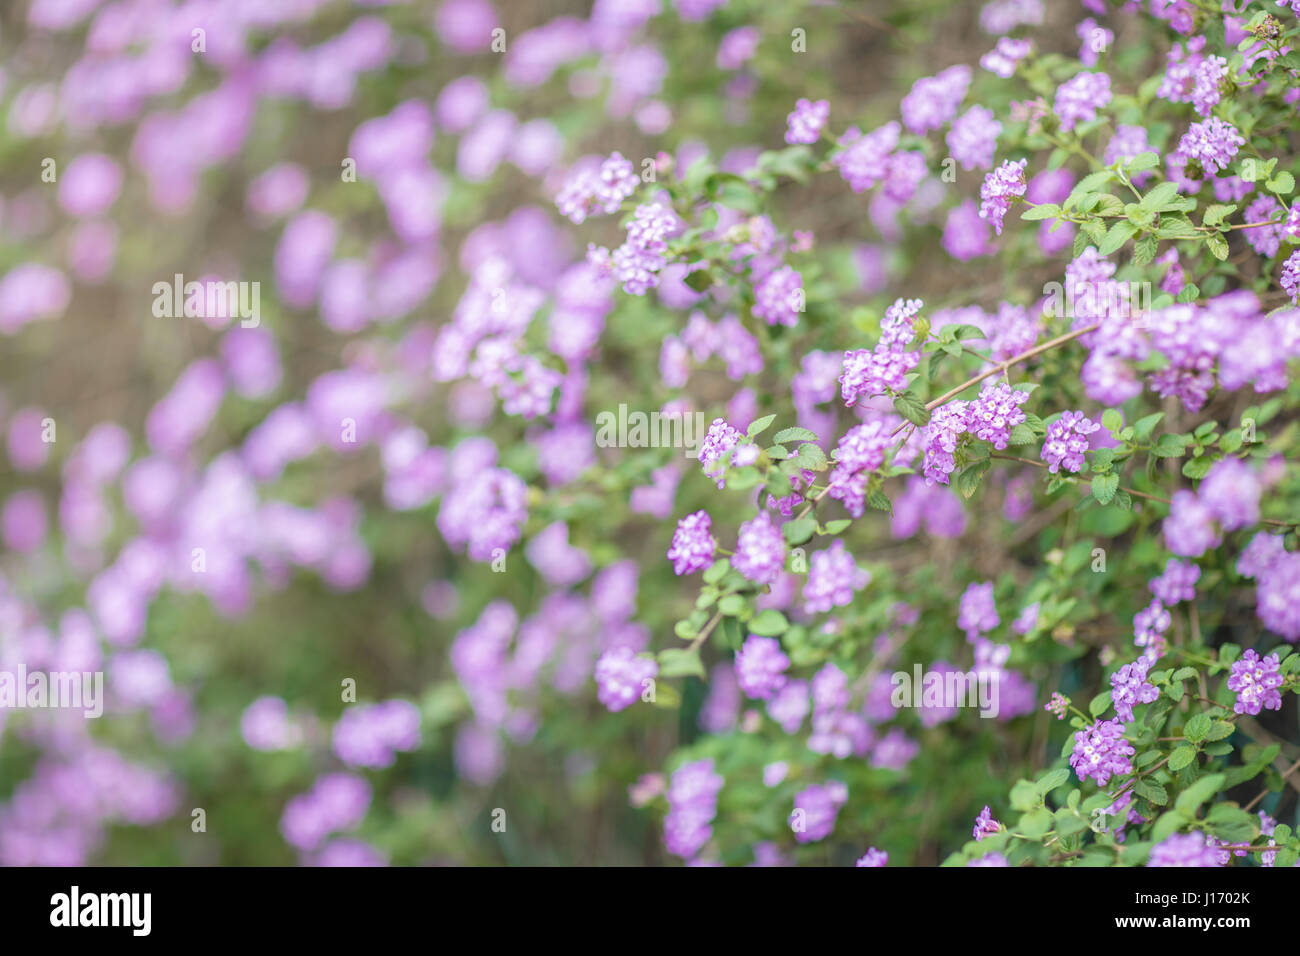 Field Of Tiny Purple Flowers In Spring Stock Photo 138451339 Alamy